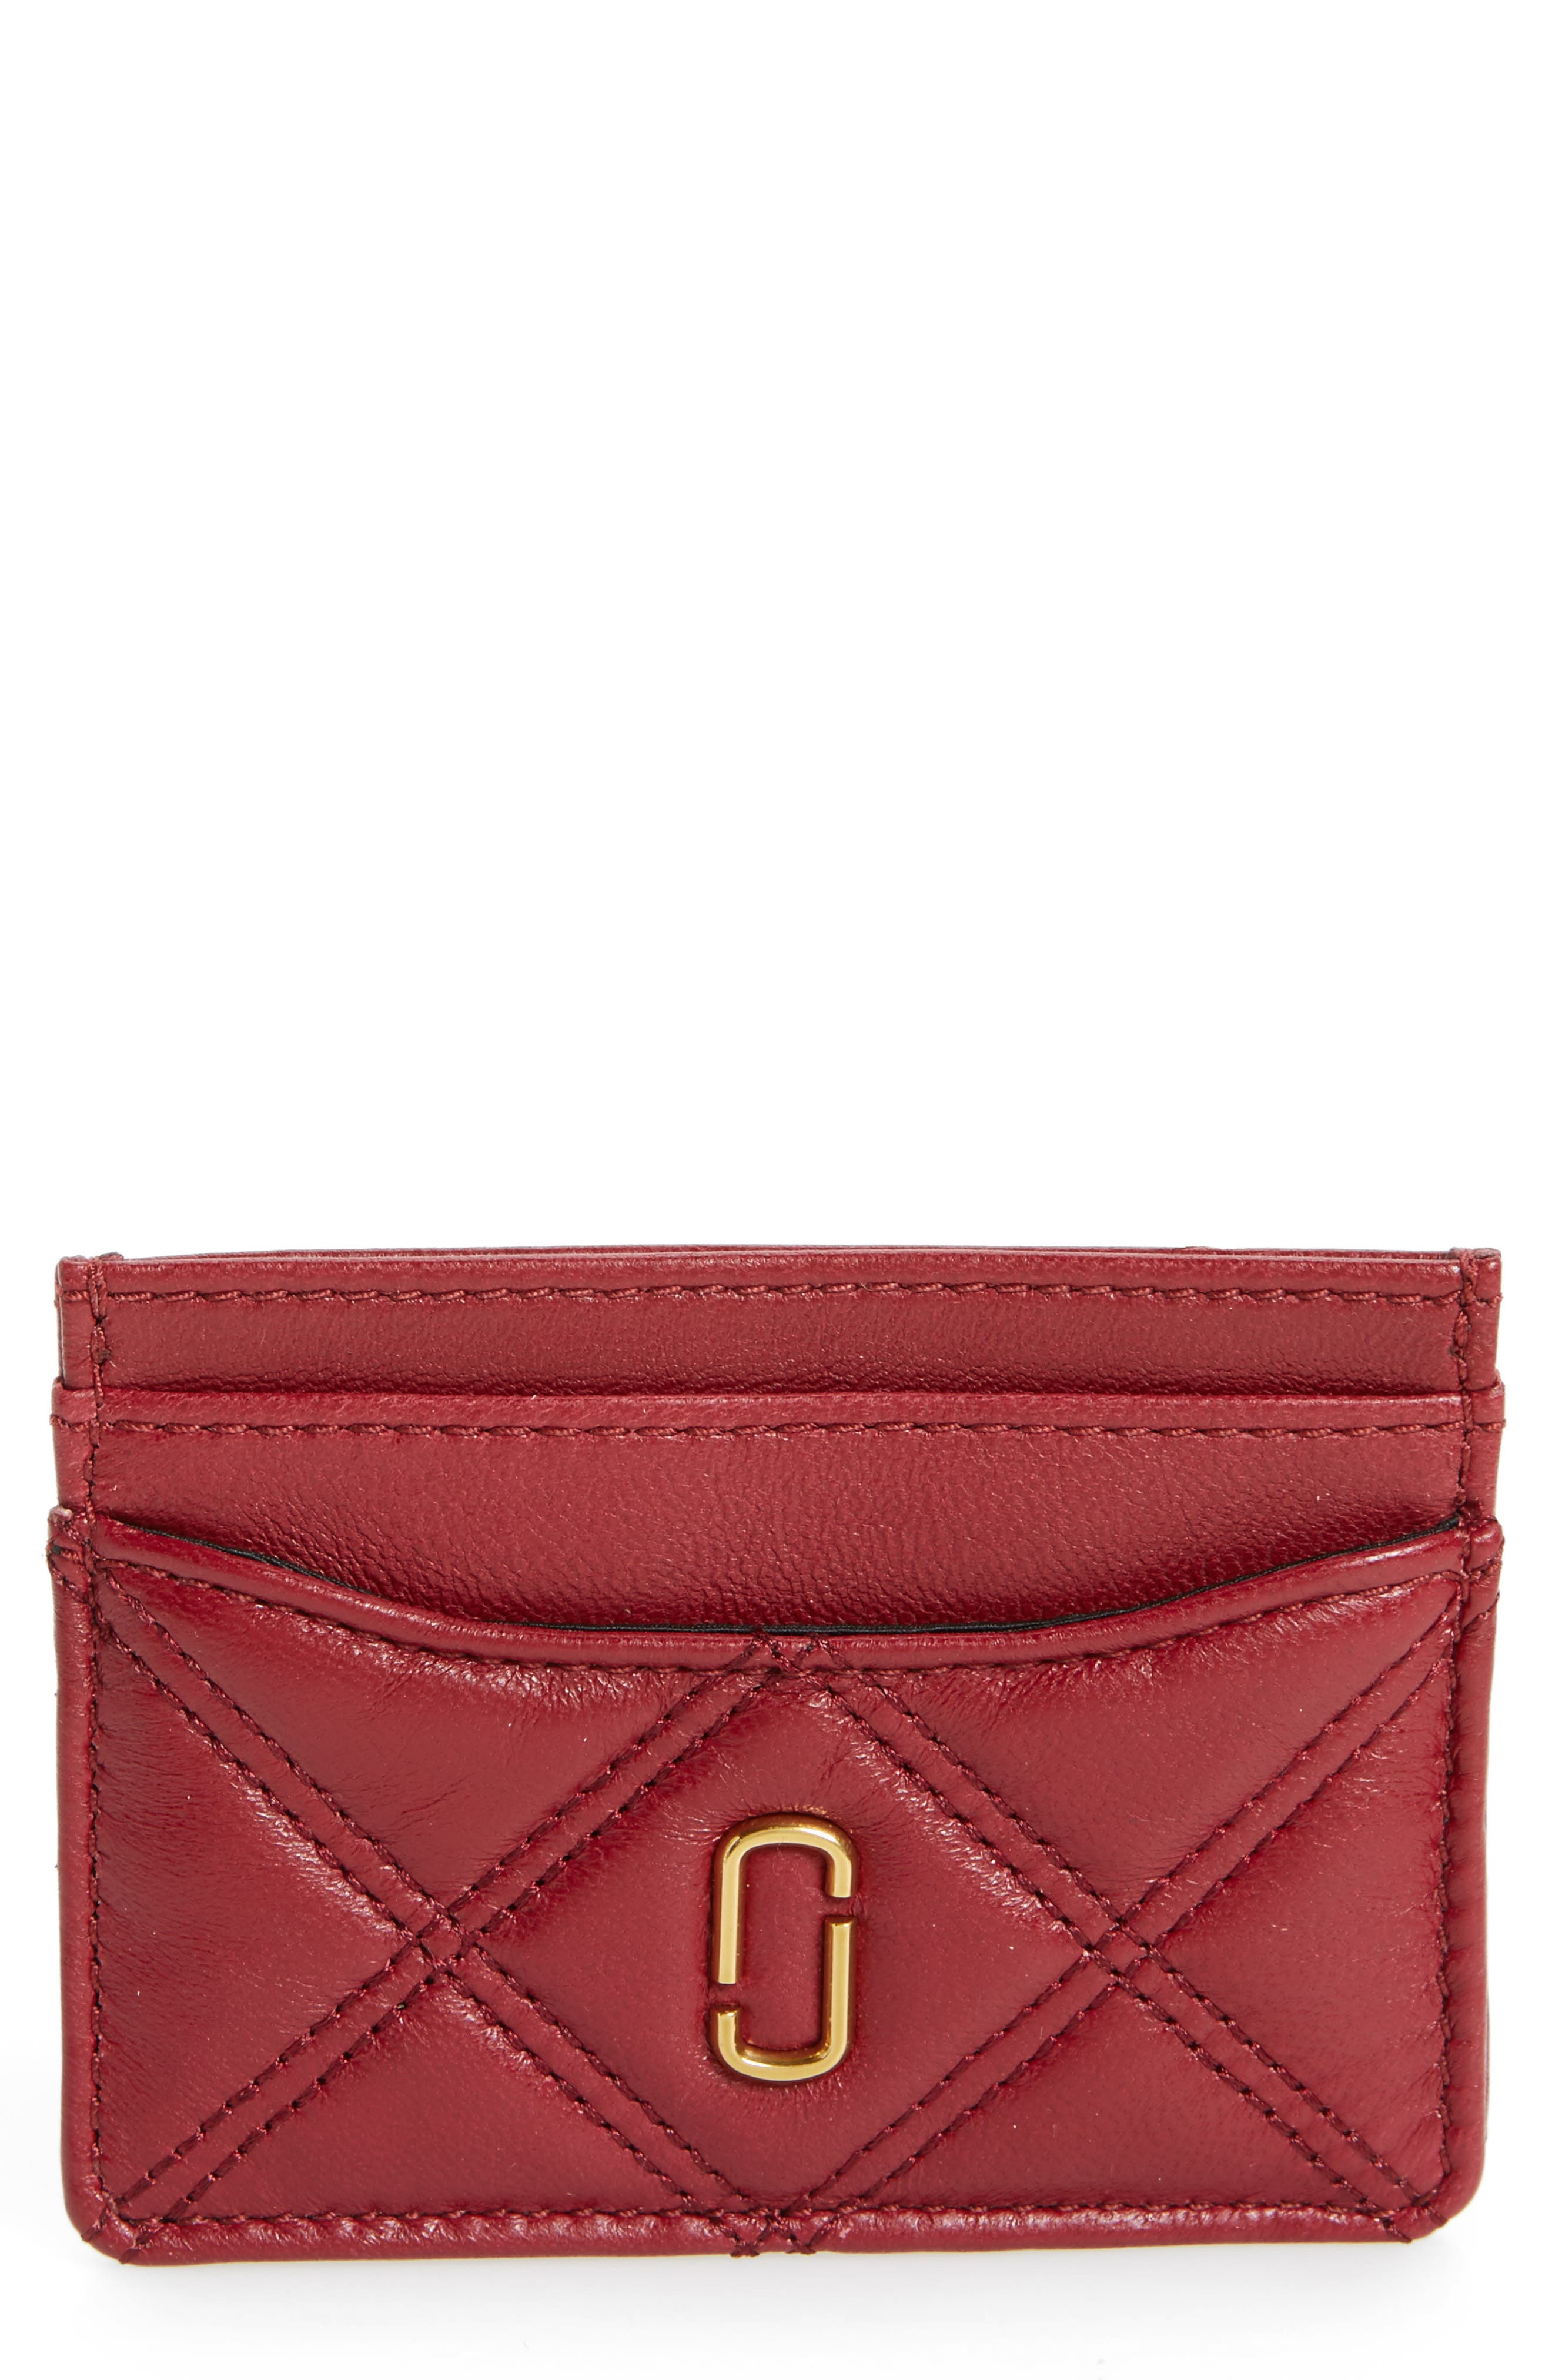 Main Image - MARC JACOBS Quilted Leather Card Case